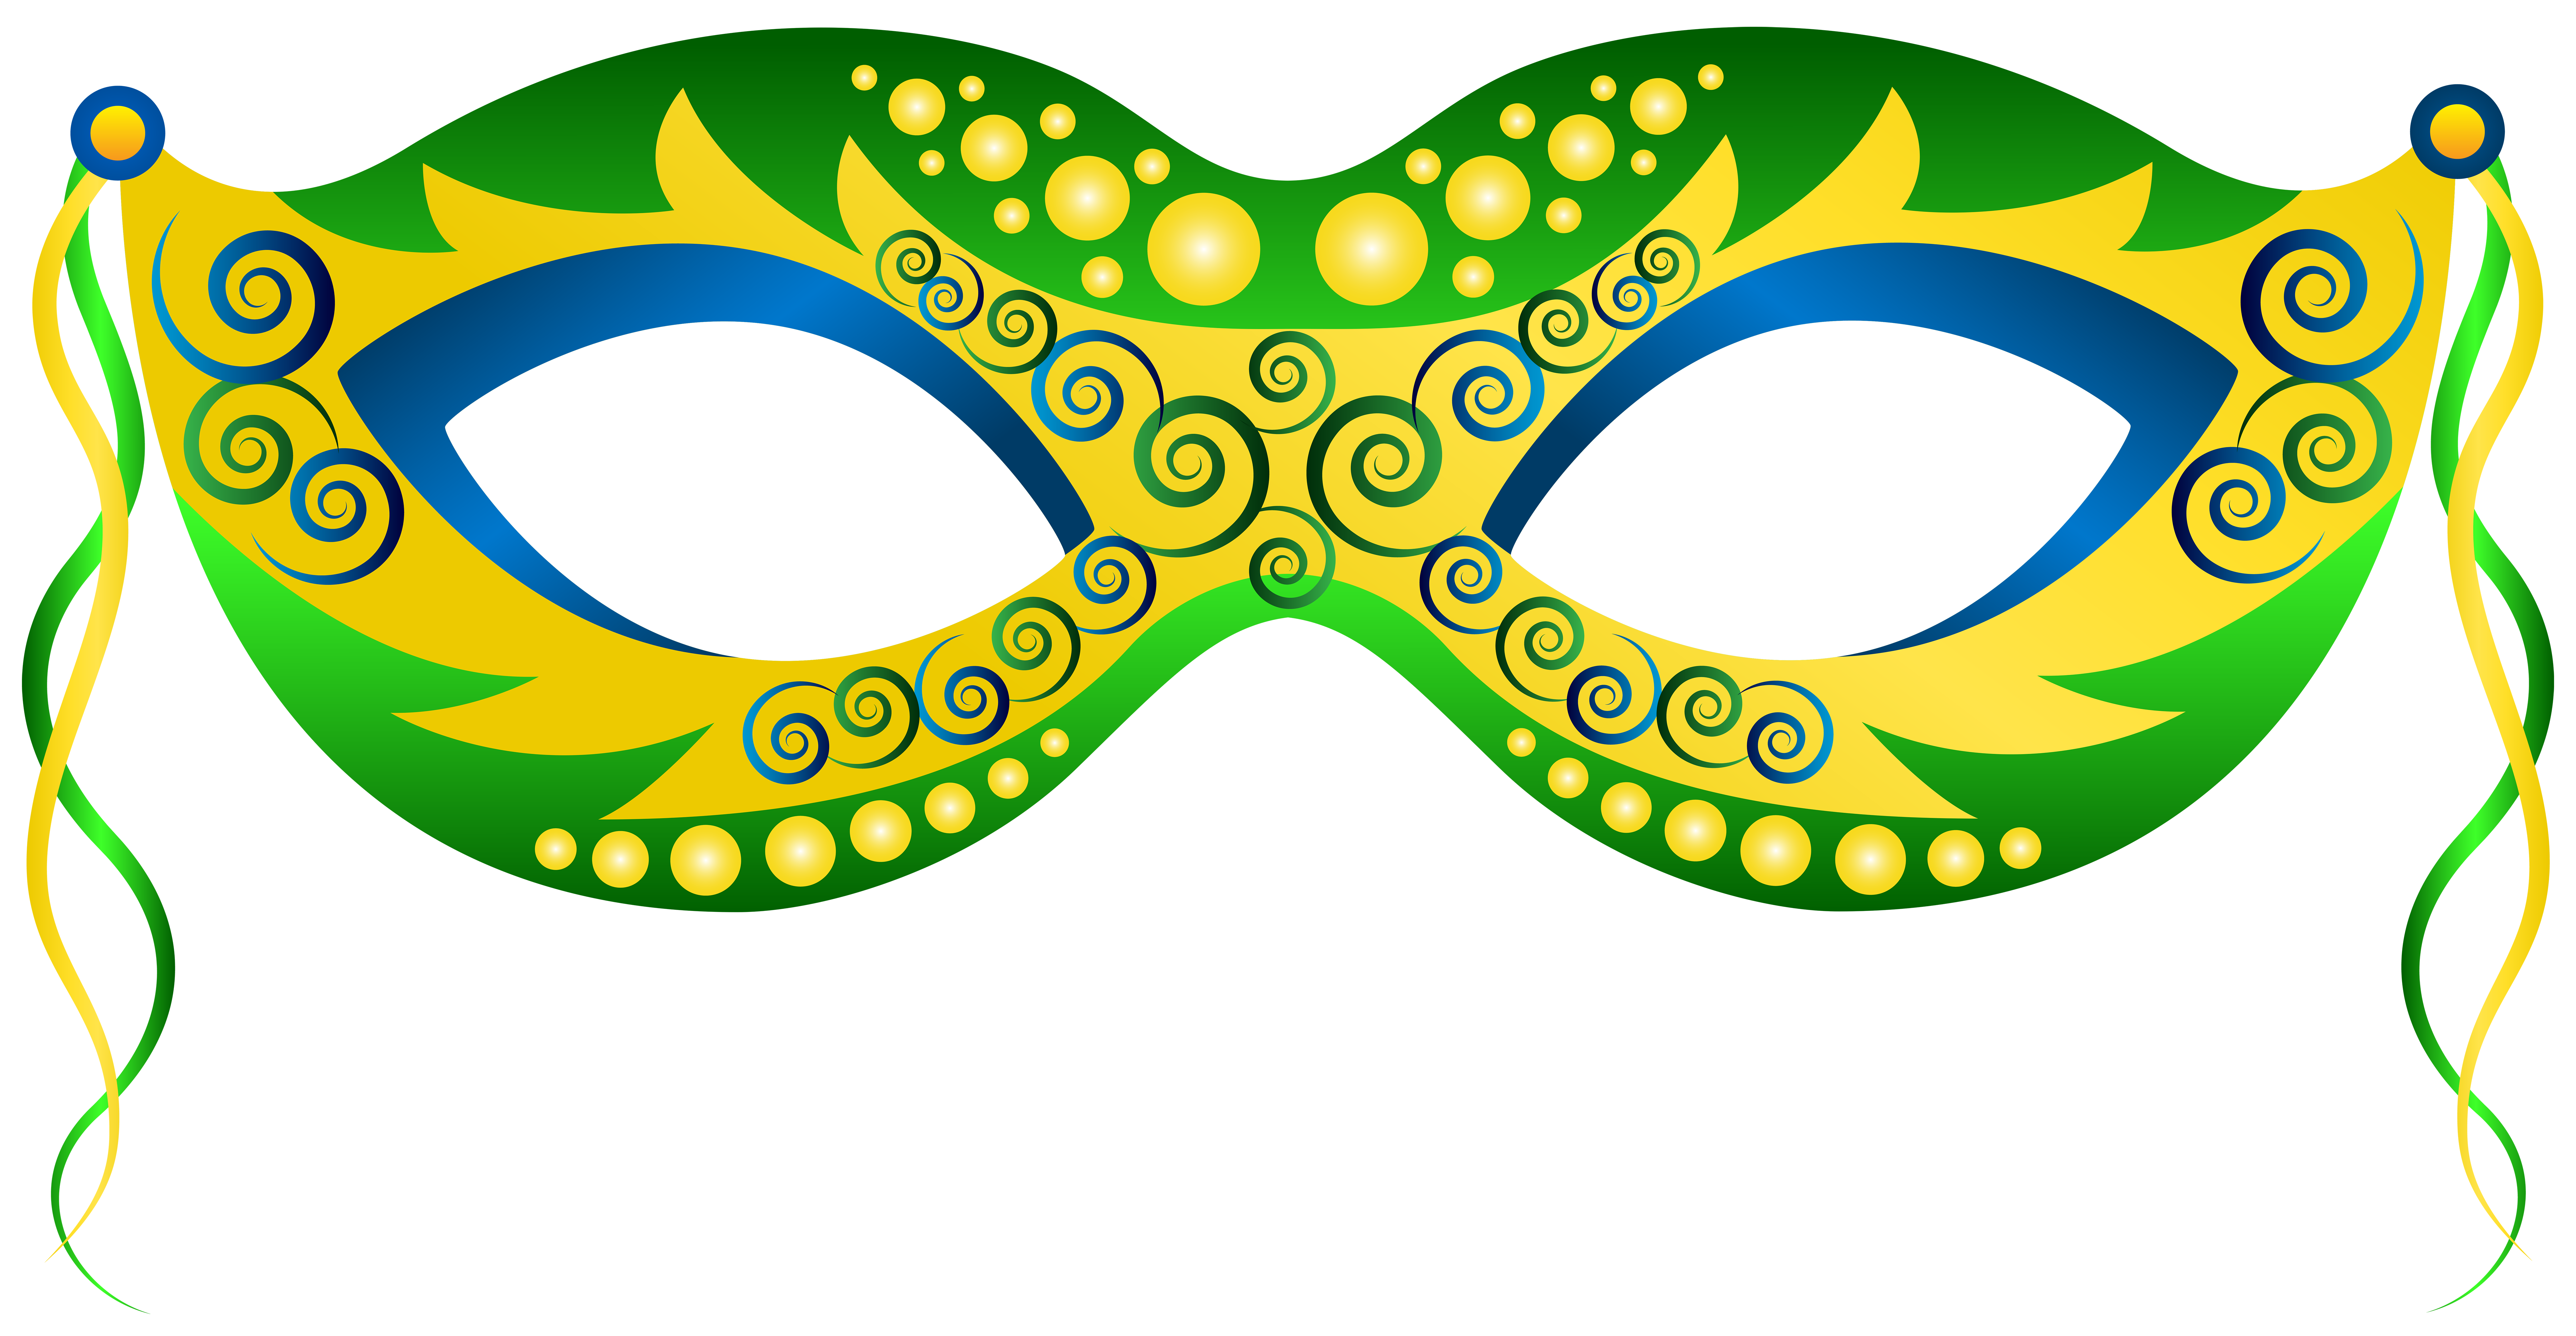 Green yellow carnival png. Mask clipart image royalty free